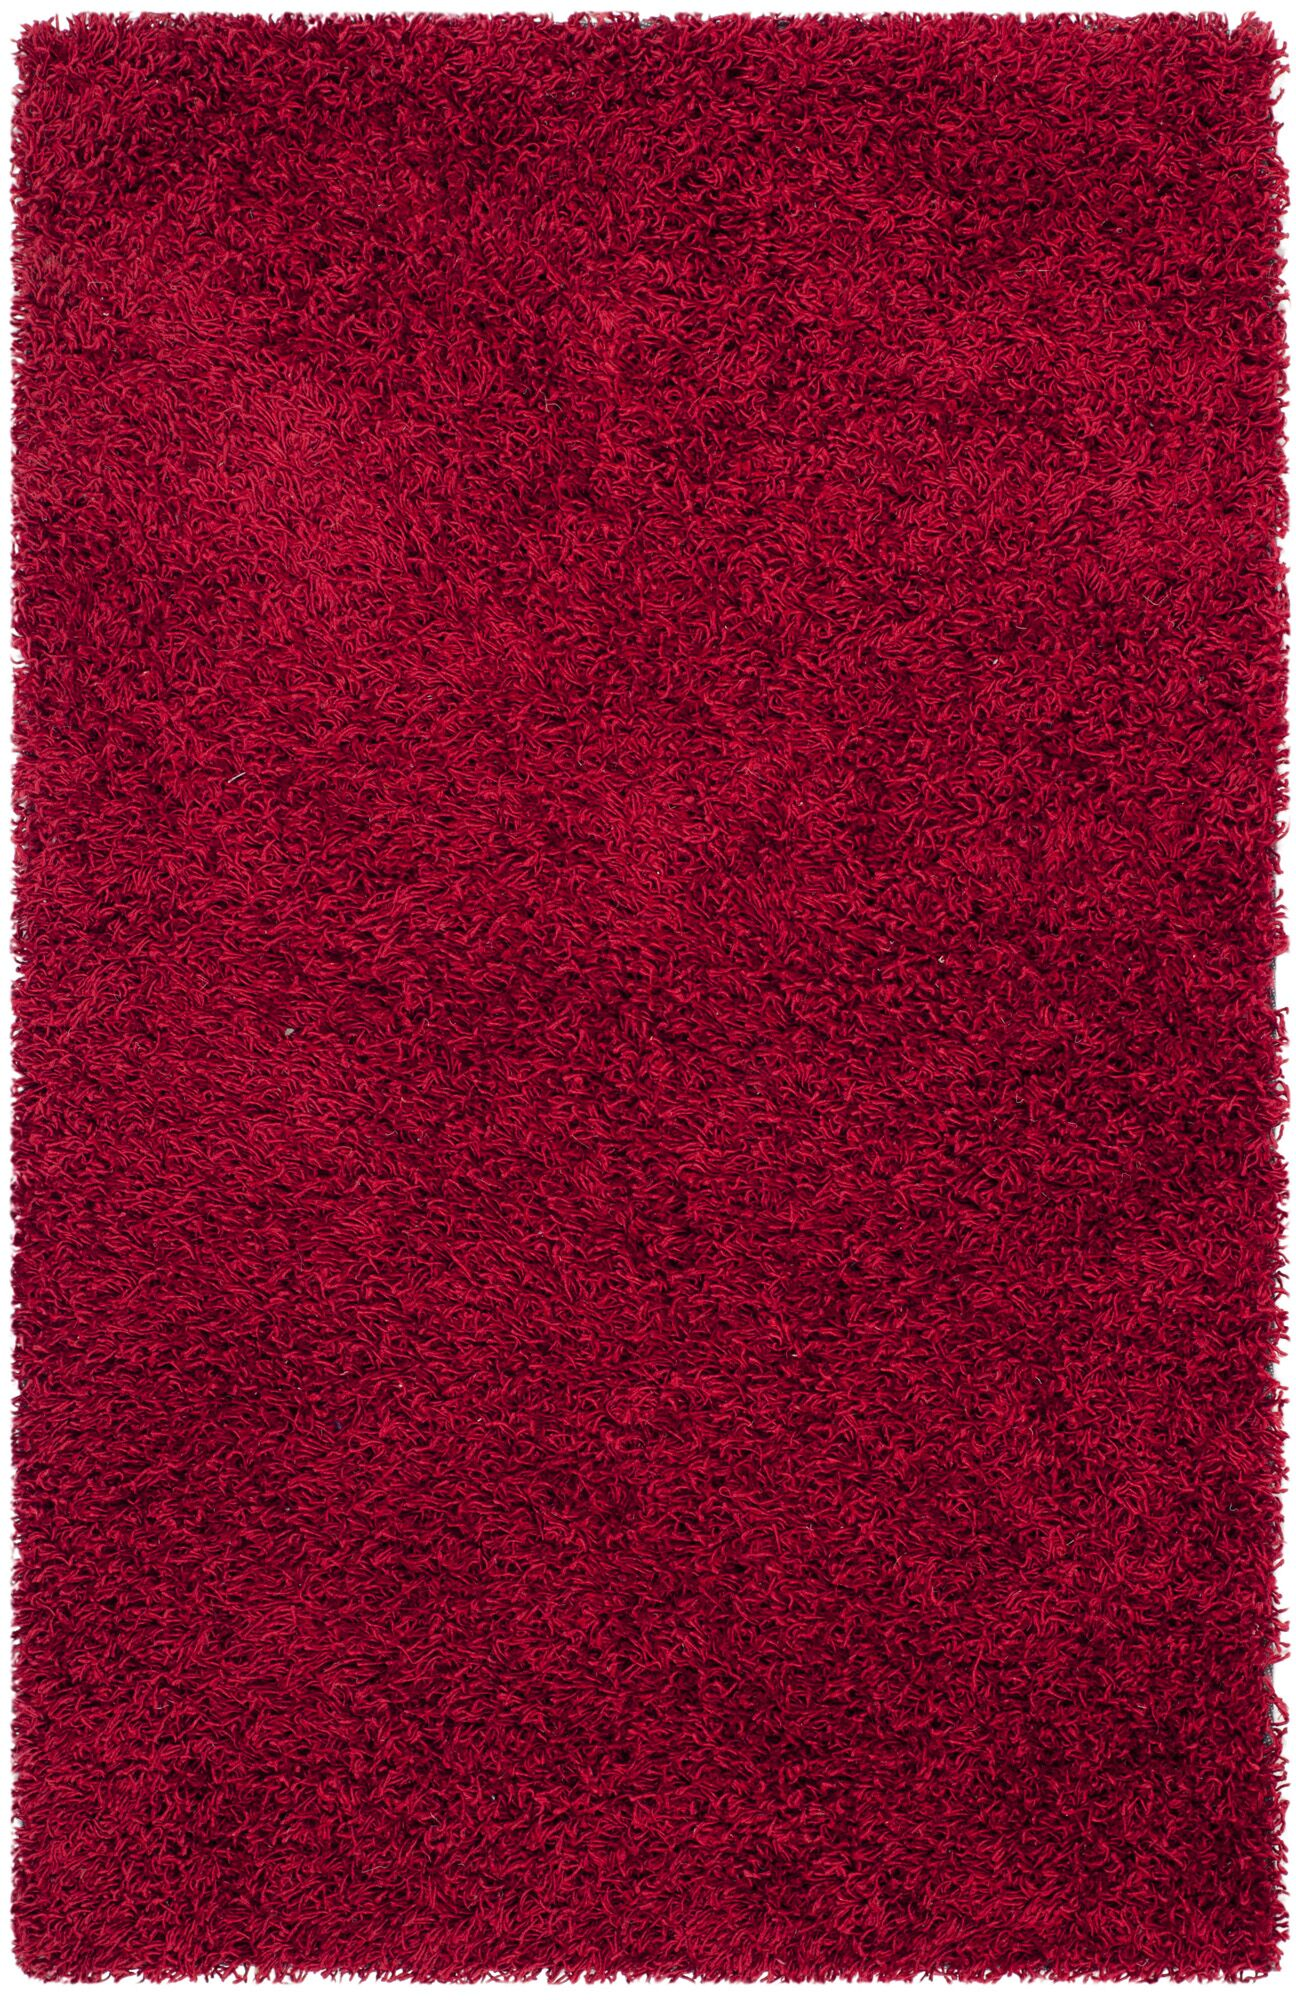 Starr Hill Red Area Rug Rug Size: Rectangle 5' x 8'